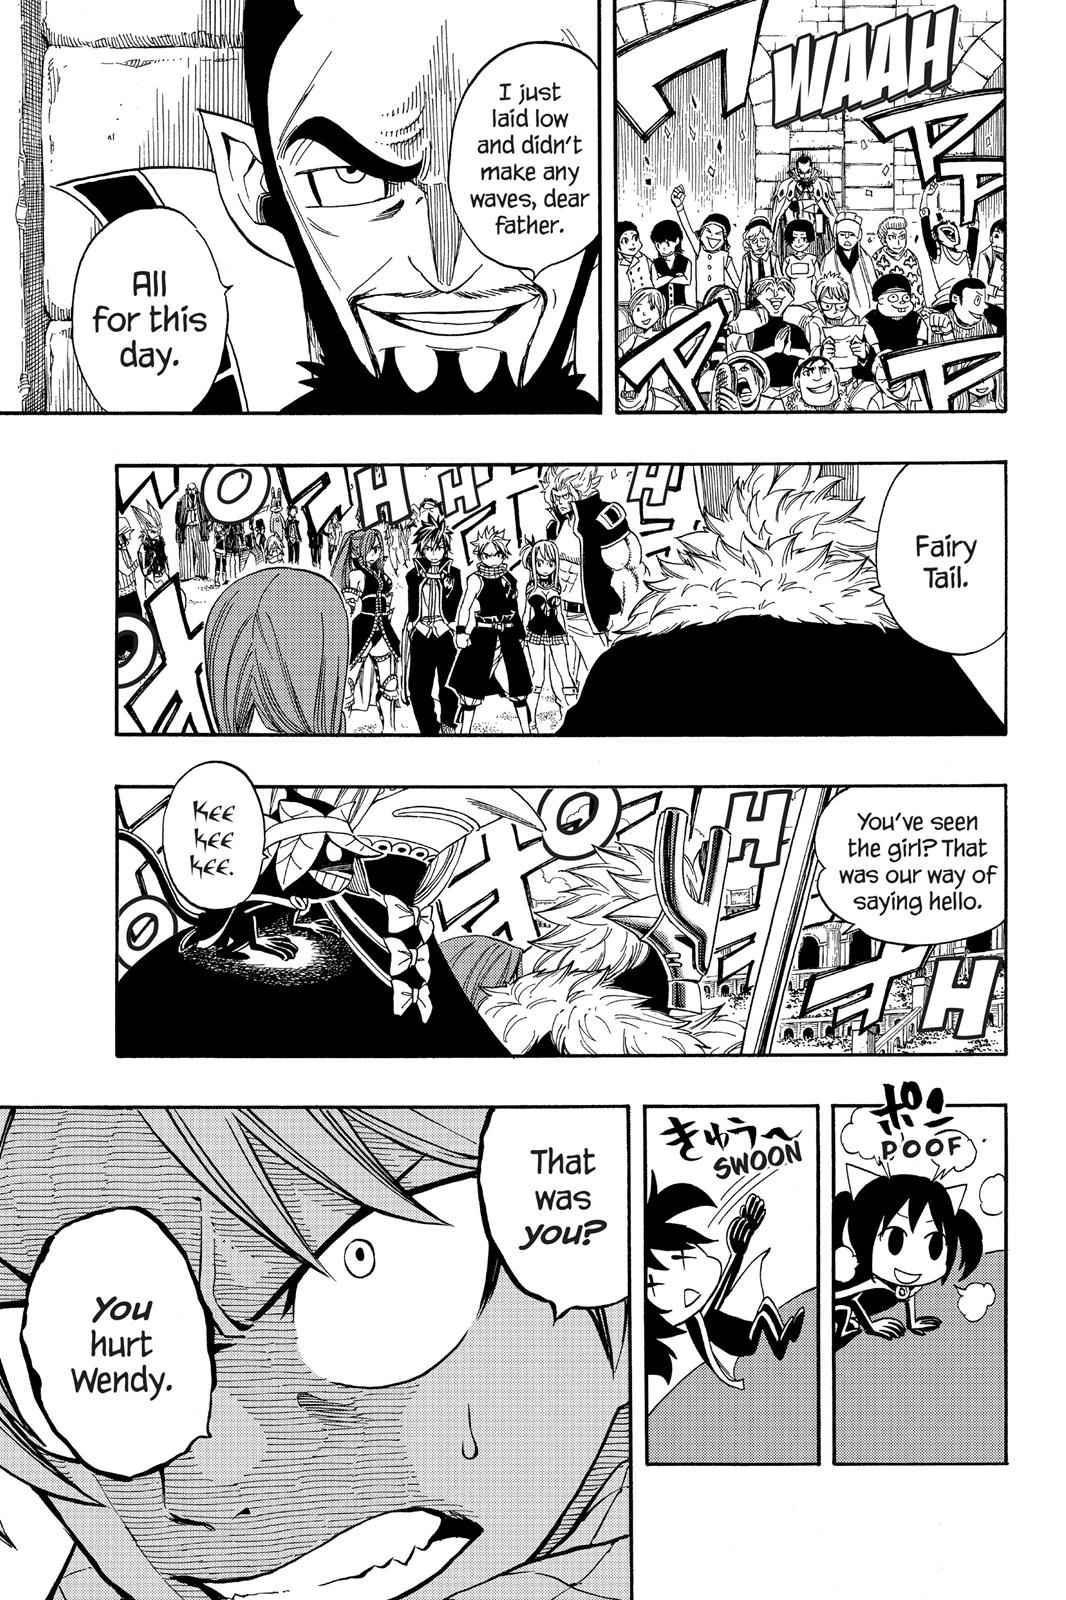 Fairy Tail Chapter 267 Page 22